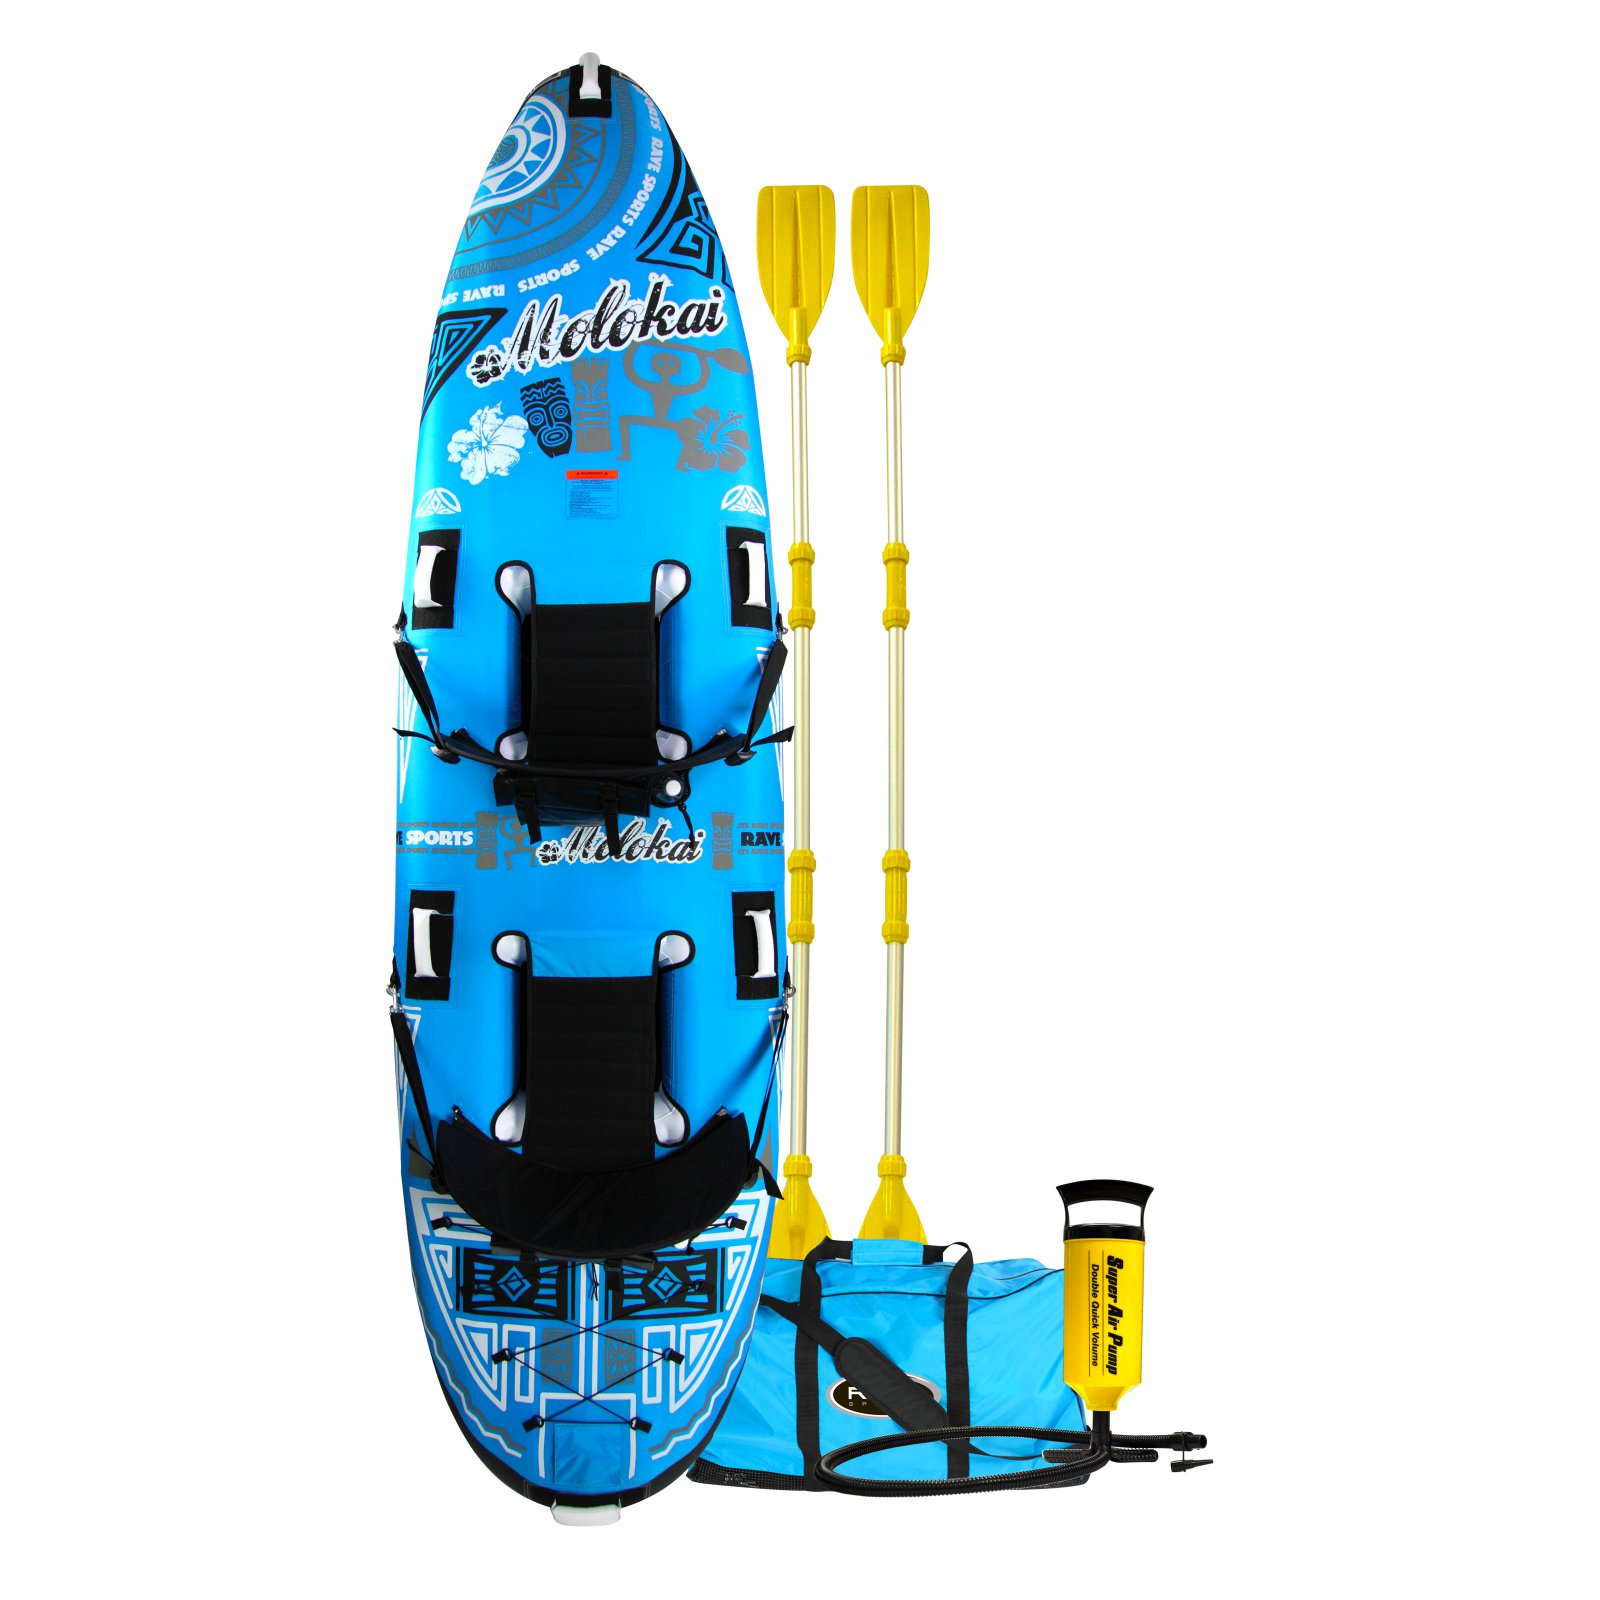 Rave Sports Molokai 2 Person Inflatable Kayak by Rave Sports